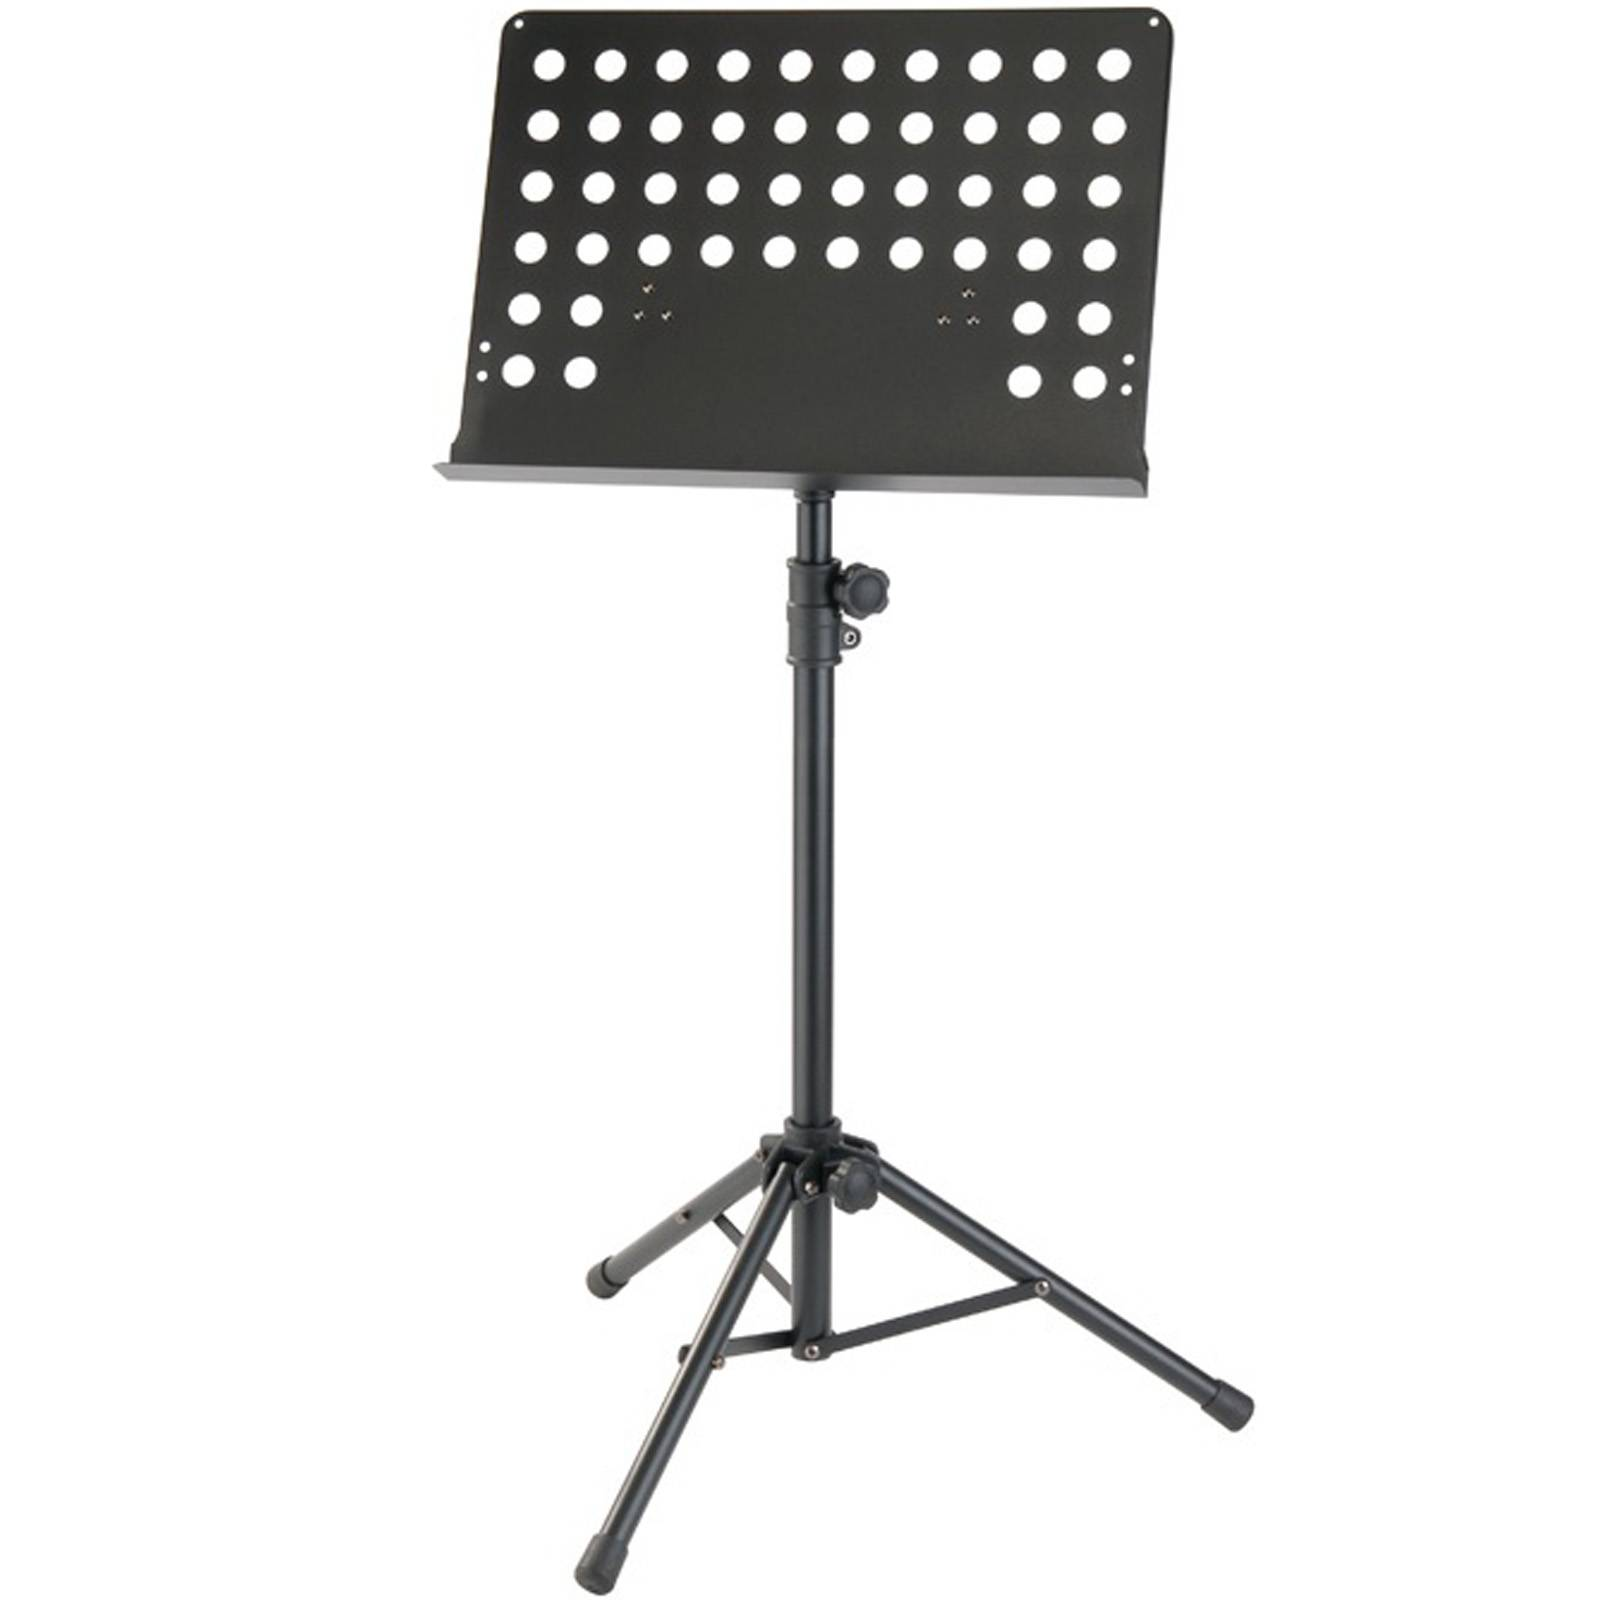 adam hall sms17 music sheet stand sheet music stands from inta audio uk. Black Bedroom Furniture Sets. Home Design Ideas